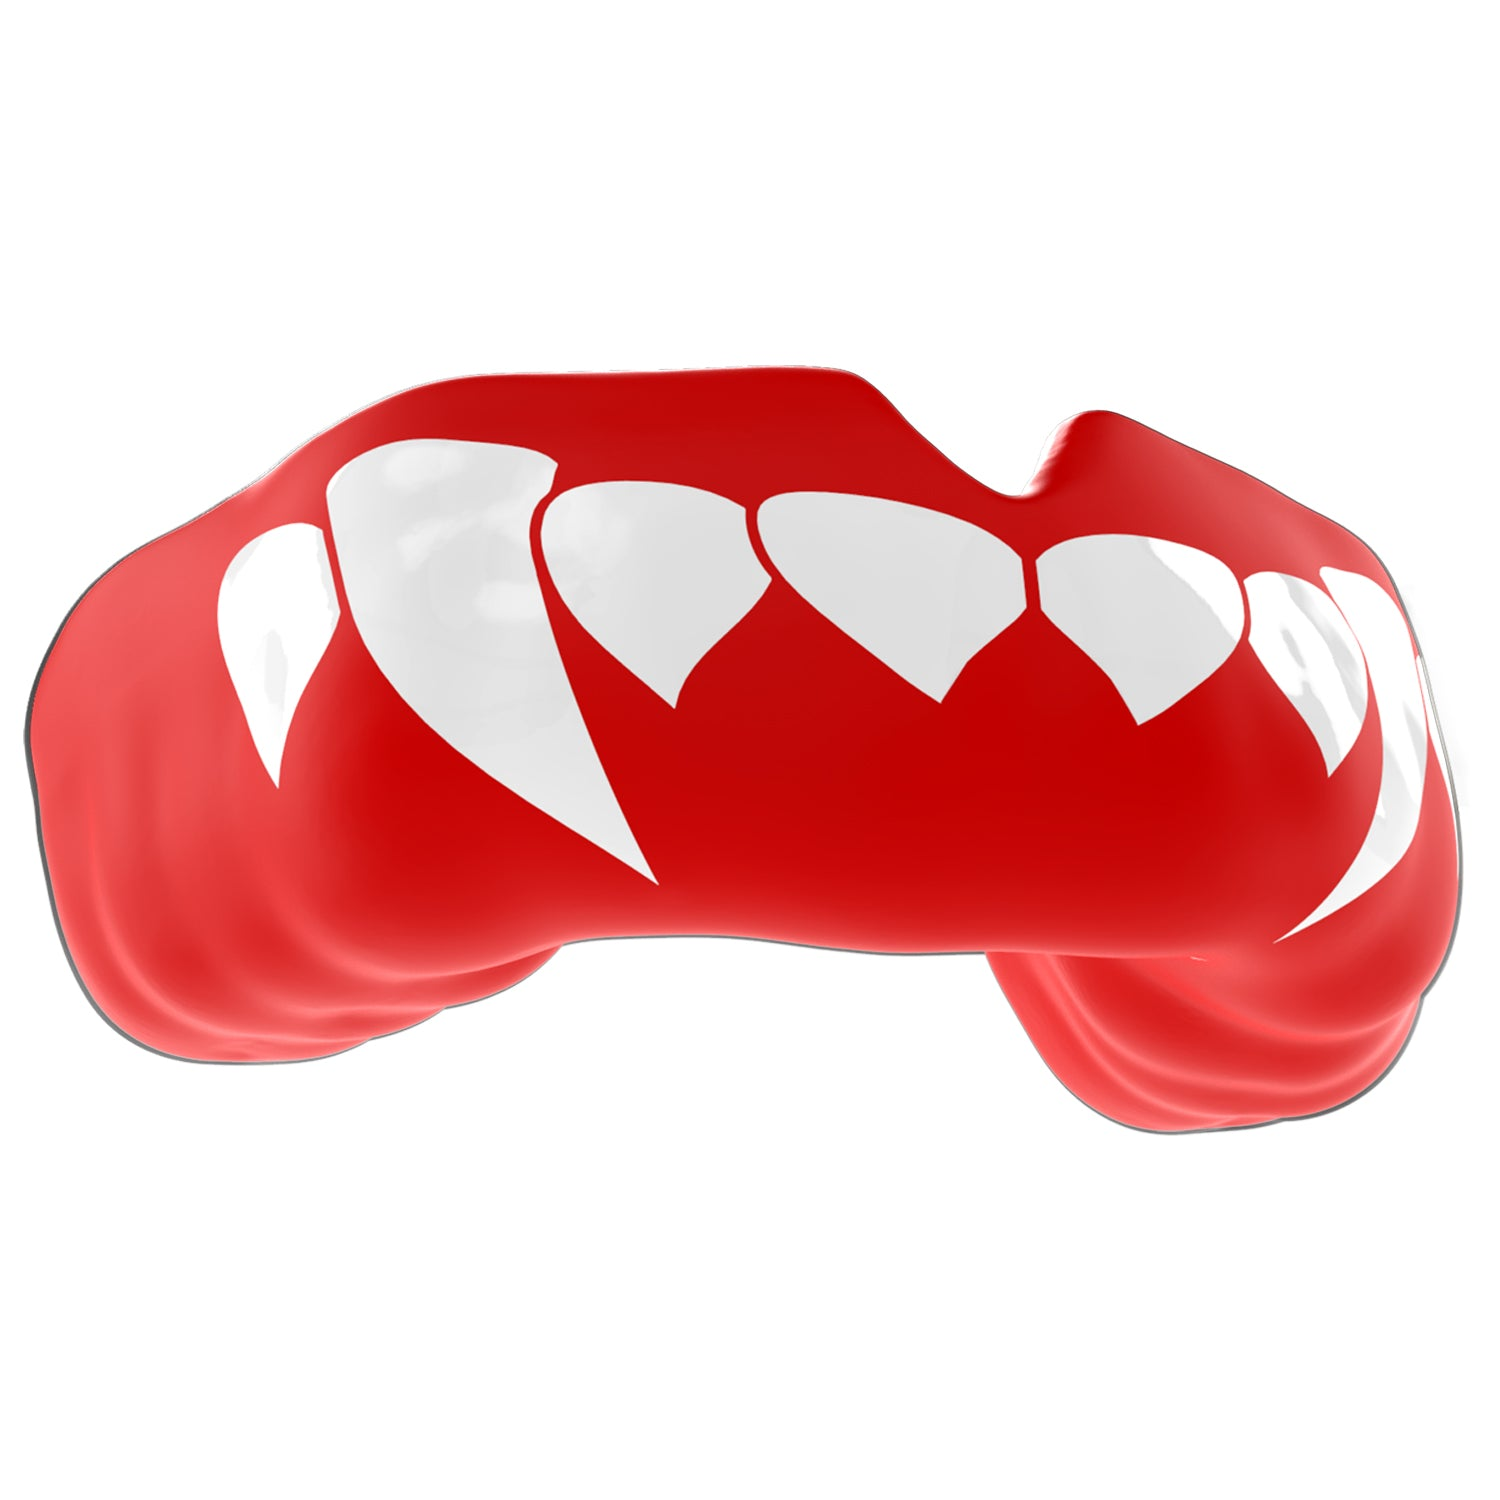 SAFEJAWZ® Popular Design Custom-fit Mouthguard - Red Fangz